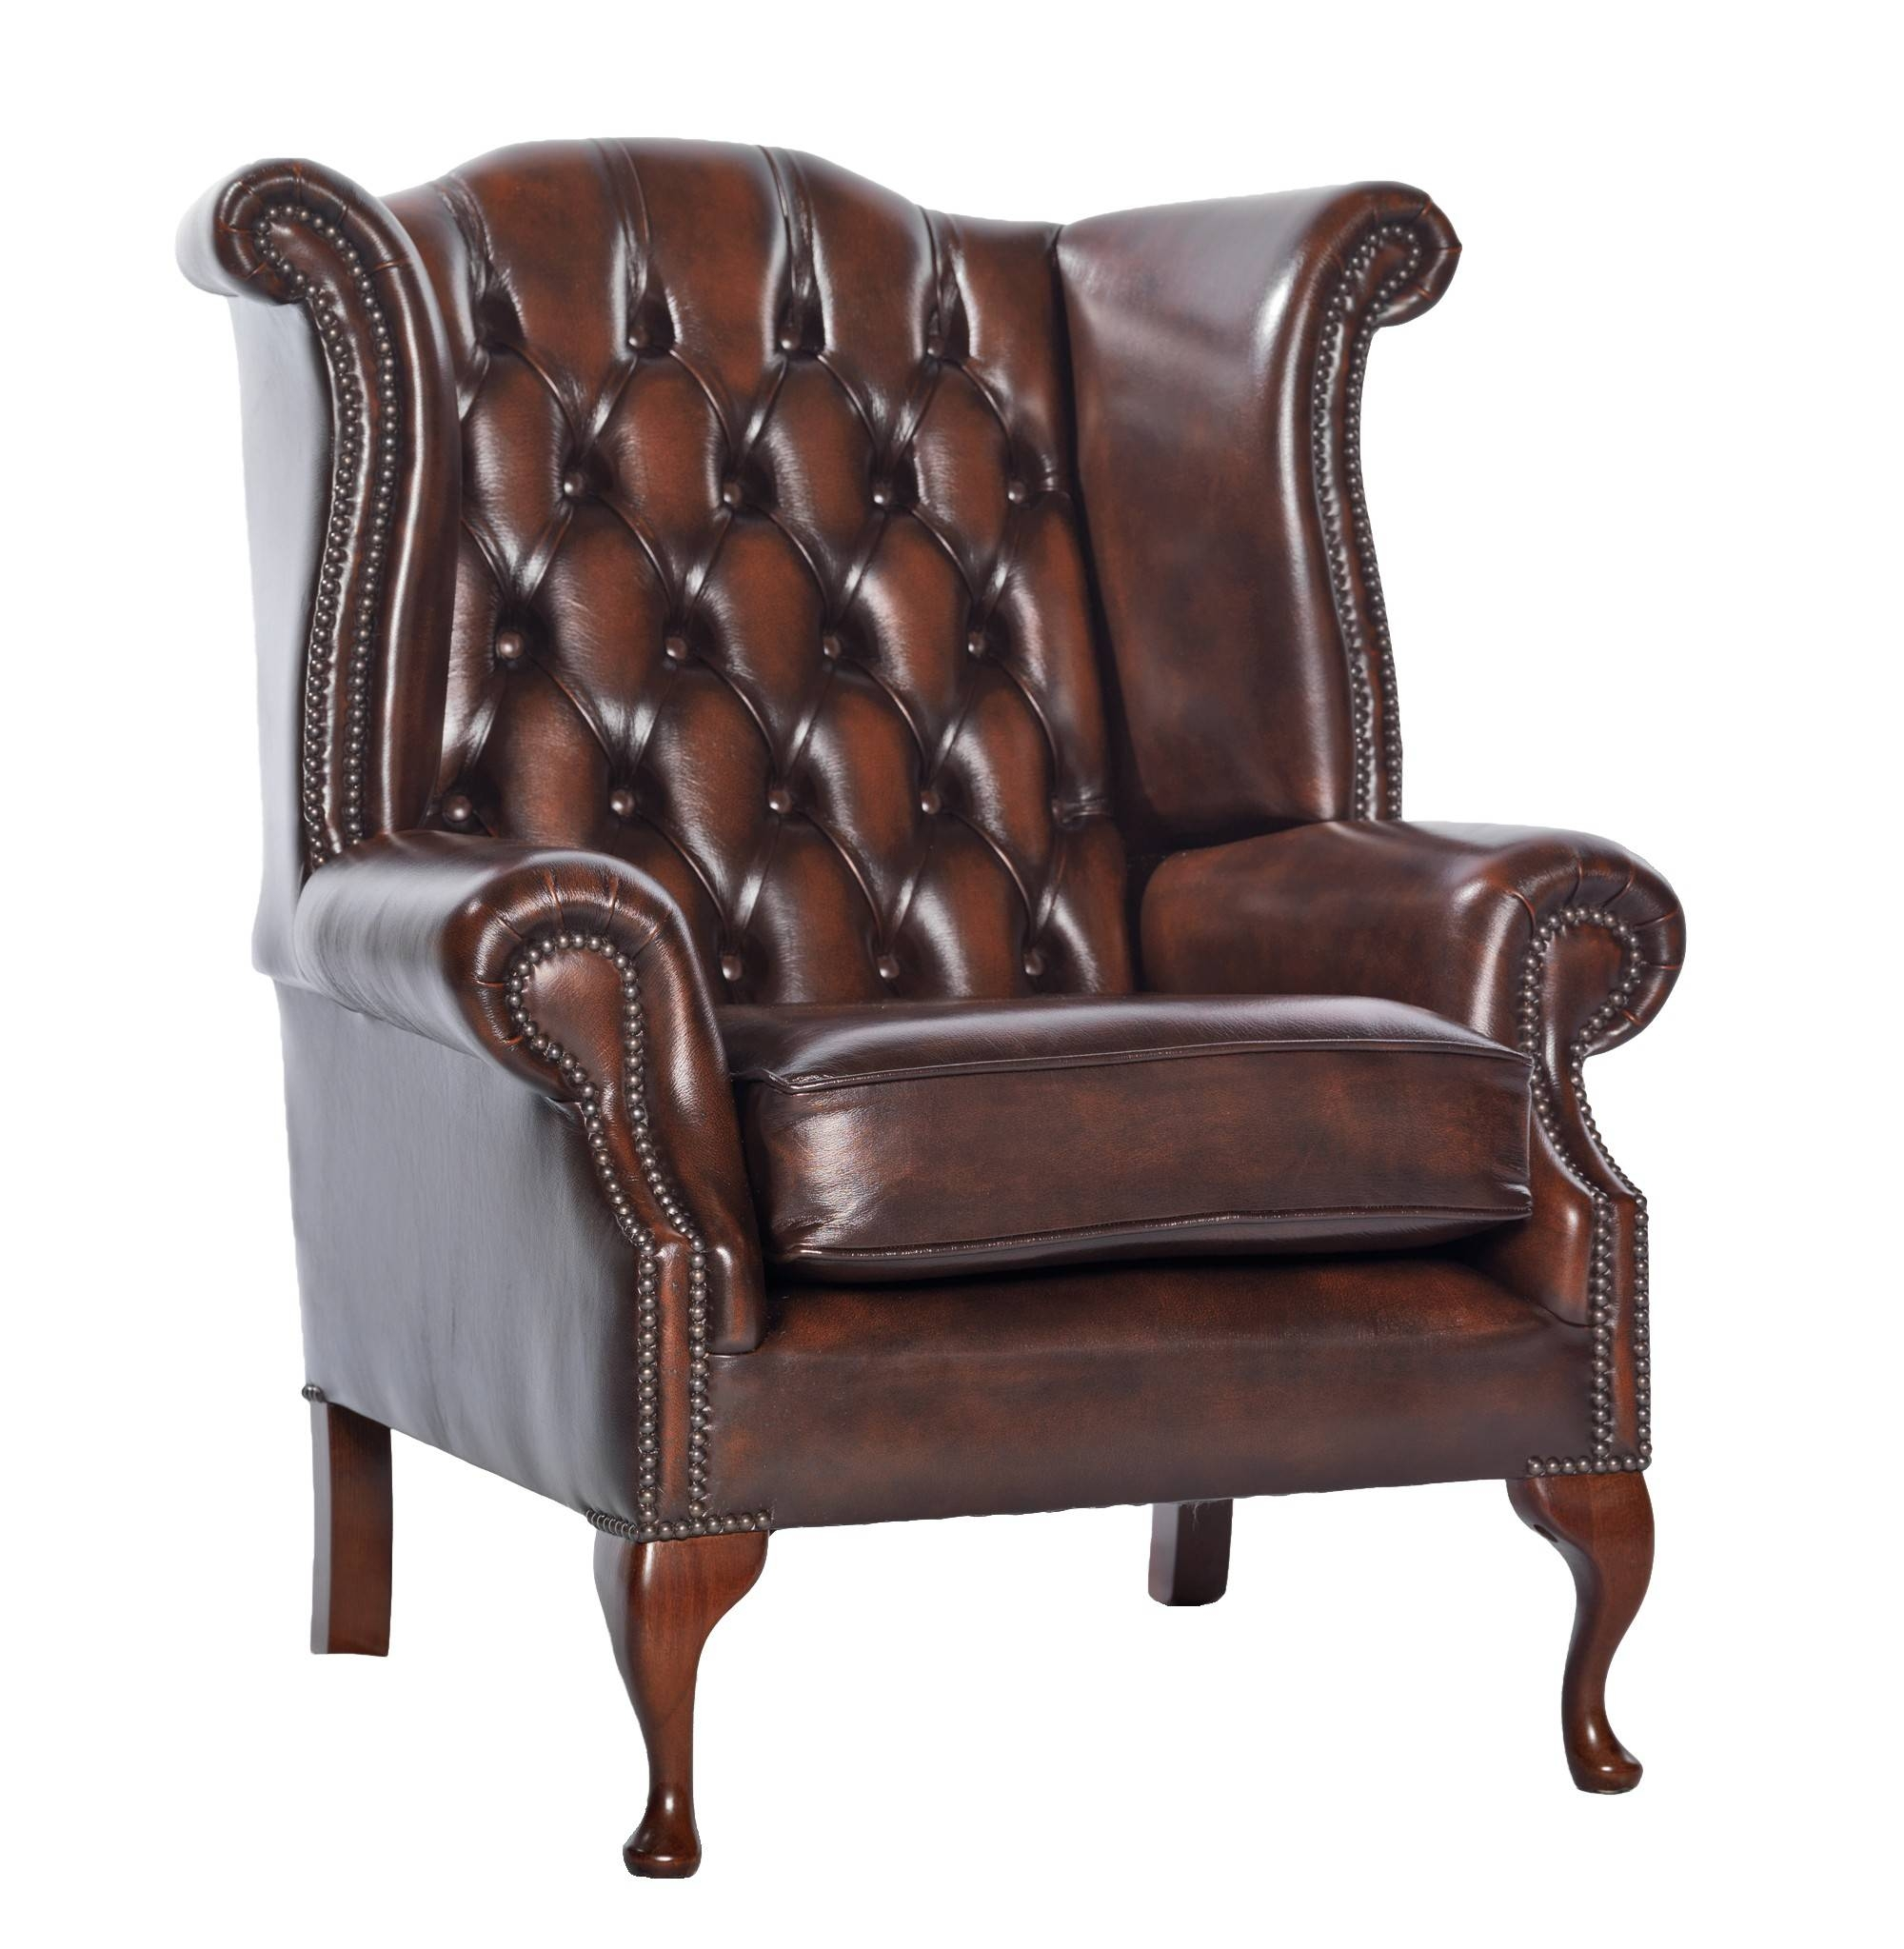 Lovely Leather Sofa Chair 94 On Contemporary Sofa Inspiration With for Chair Sofas (Image 11 of 30)